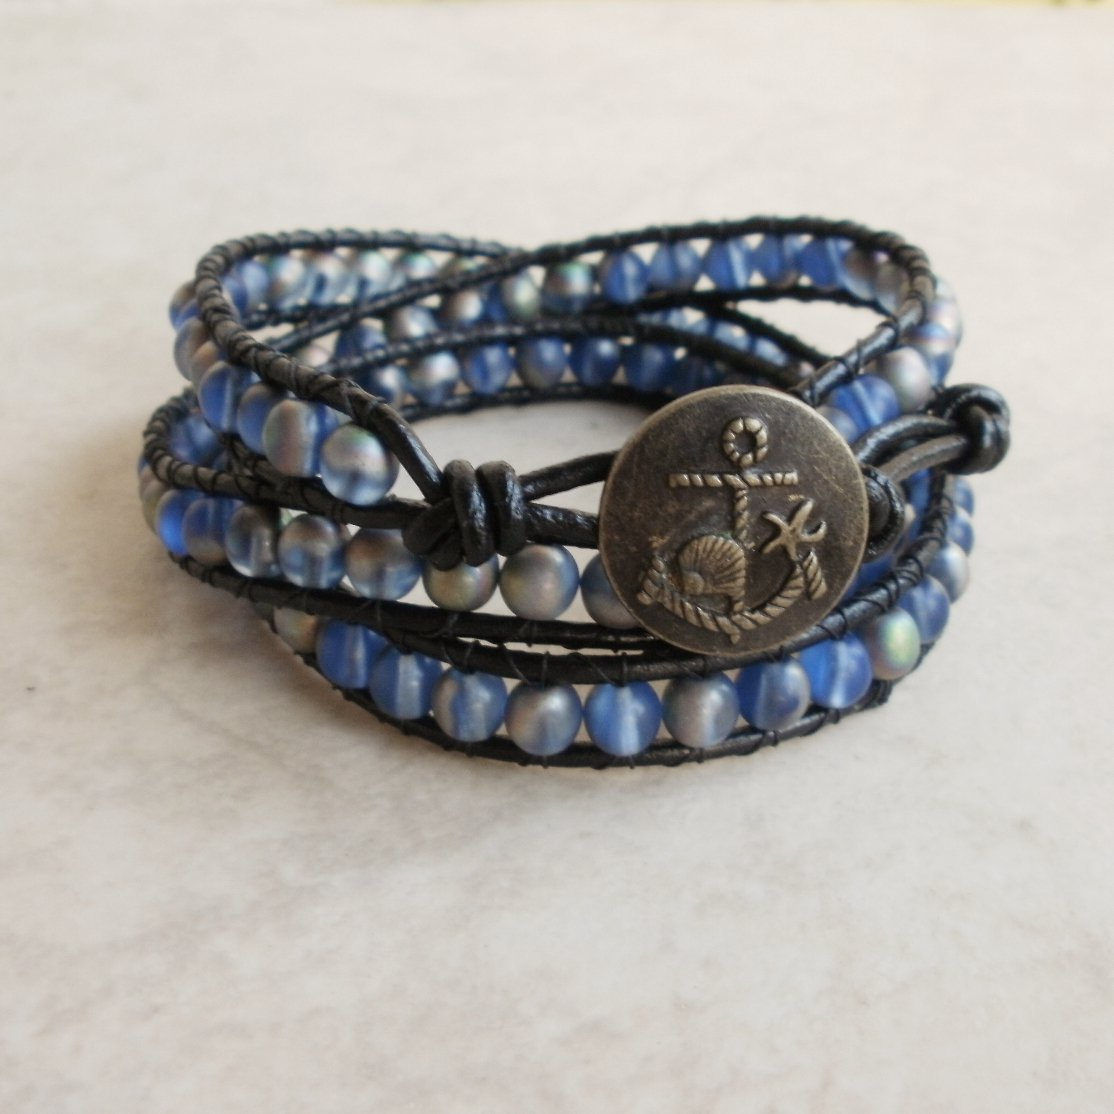 Frosty Blue and Silver Beaded Leather 3 Wrap Bracelet